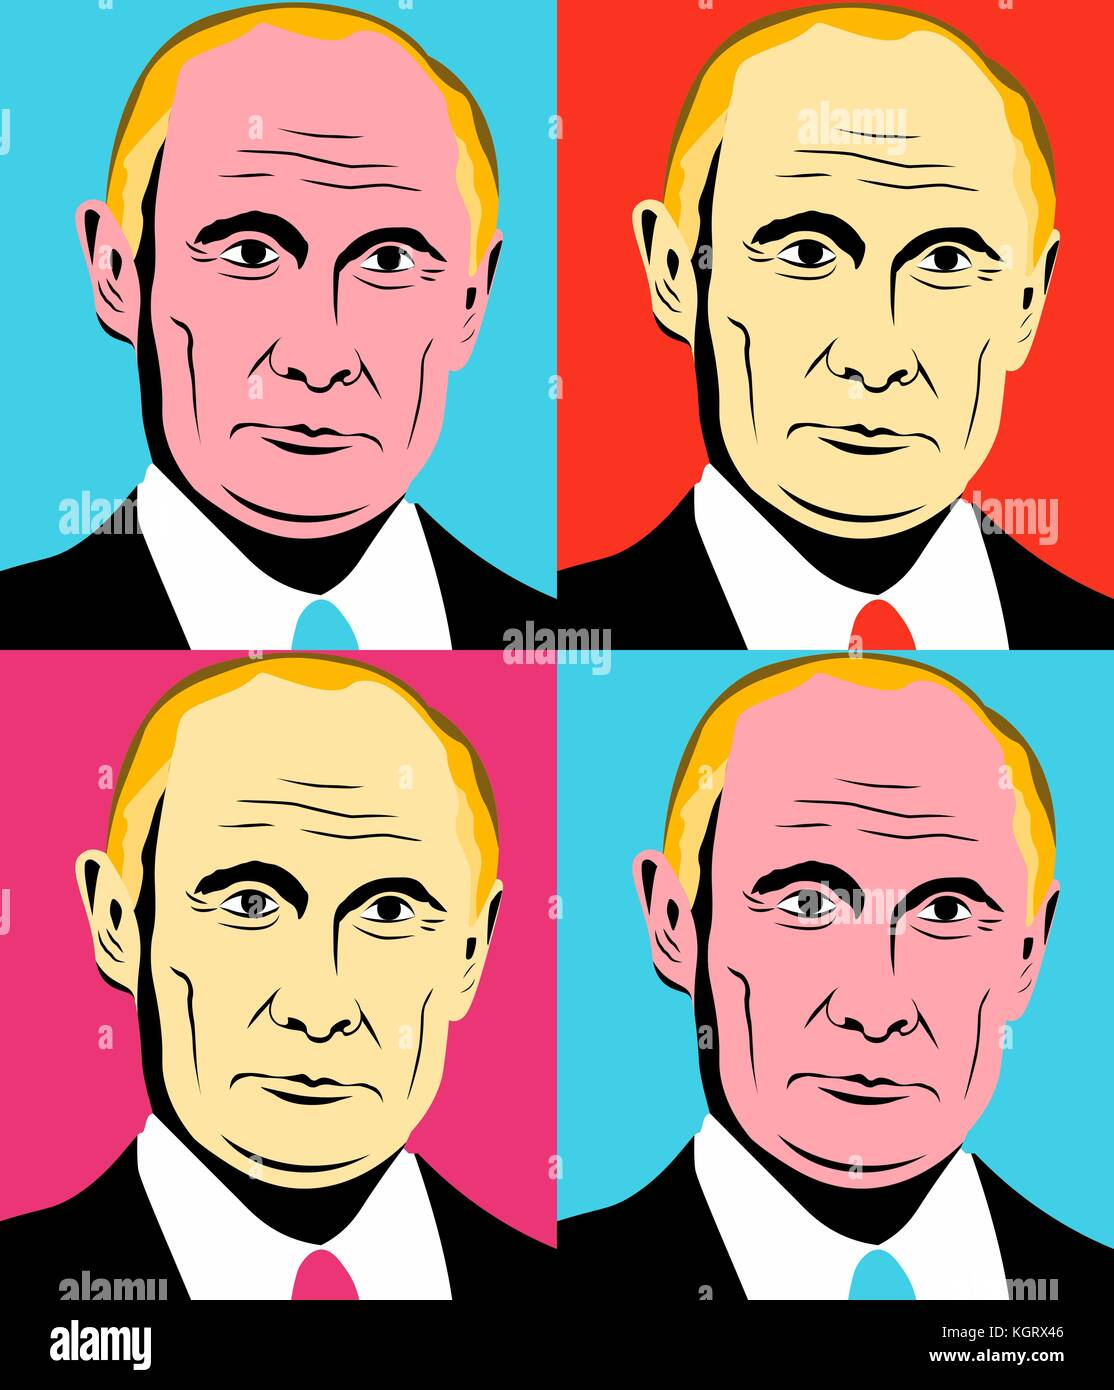 November 10 2017 Editorial illustration of the Russian Federation President Vladimir Putin in Andy Warhol style. - Stock Image